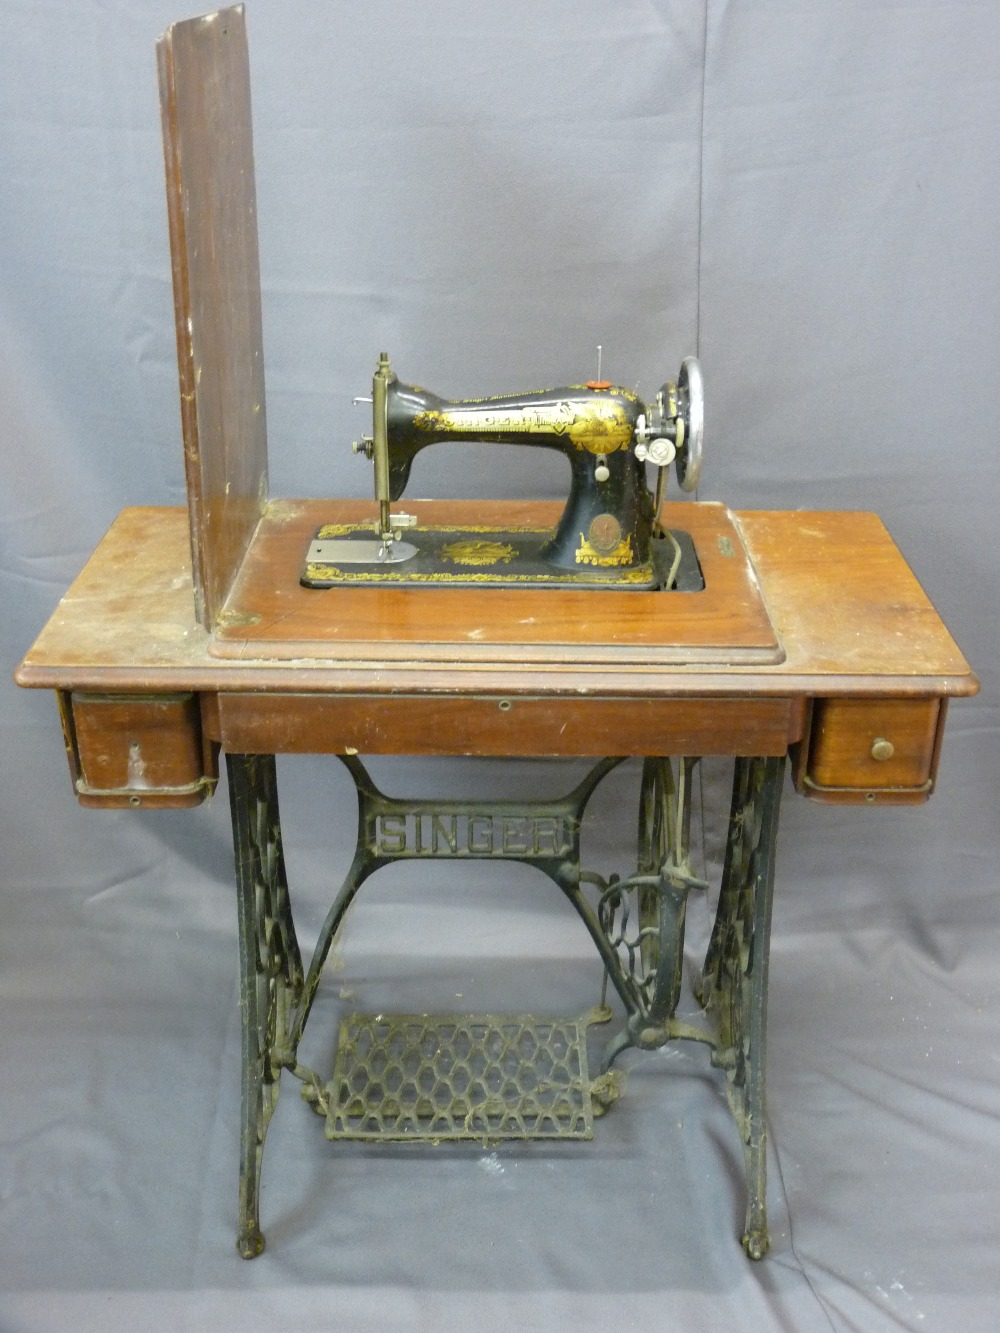 Lot 72 - VINTAGE SINGER CASED TREADLE SEWING MACHINE